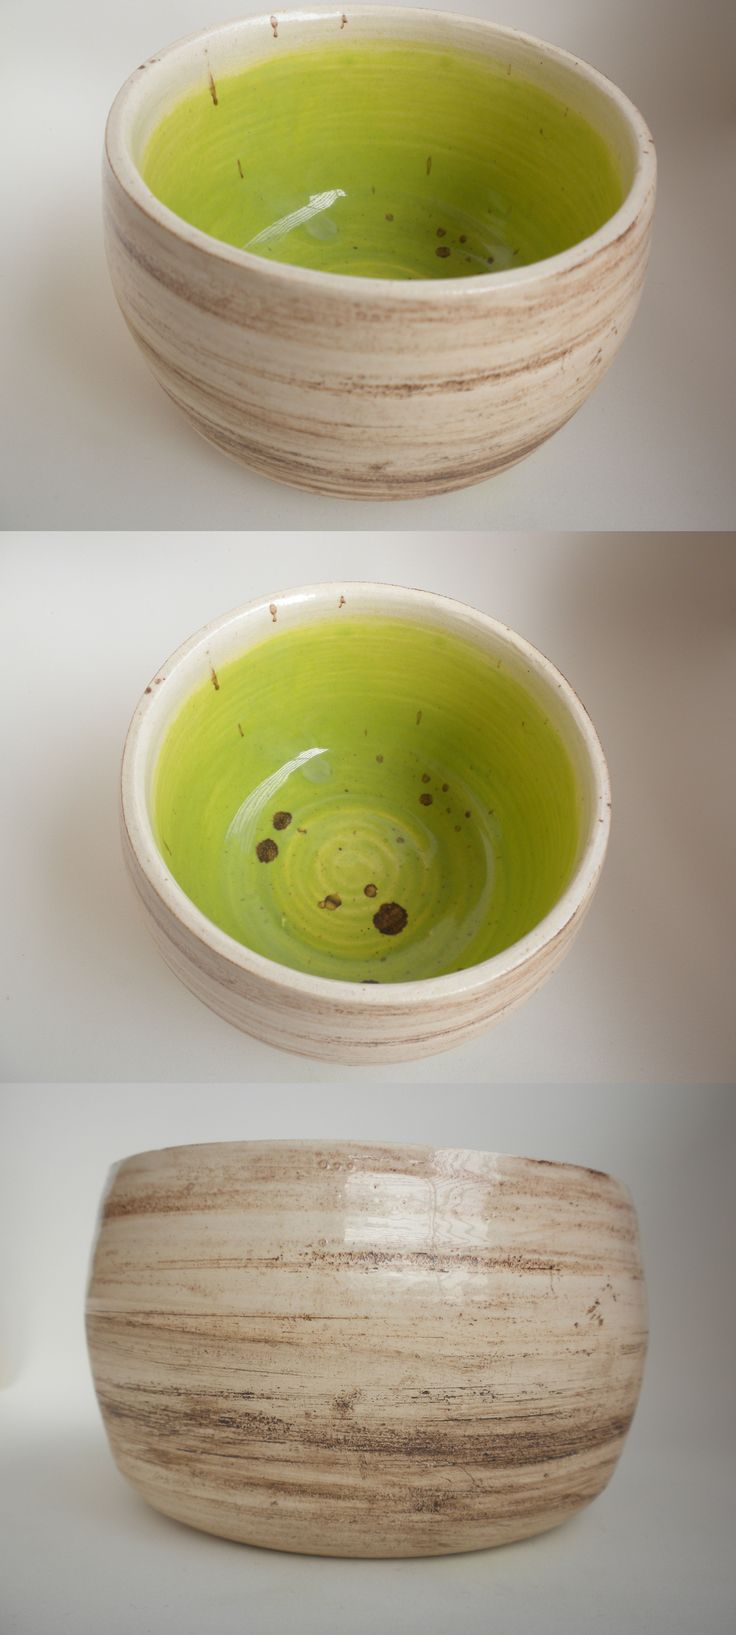 #pottery #green